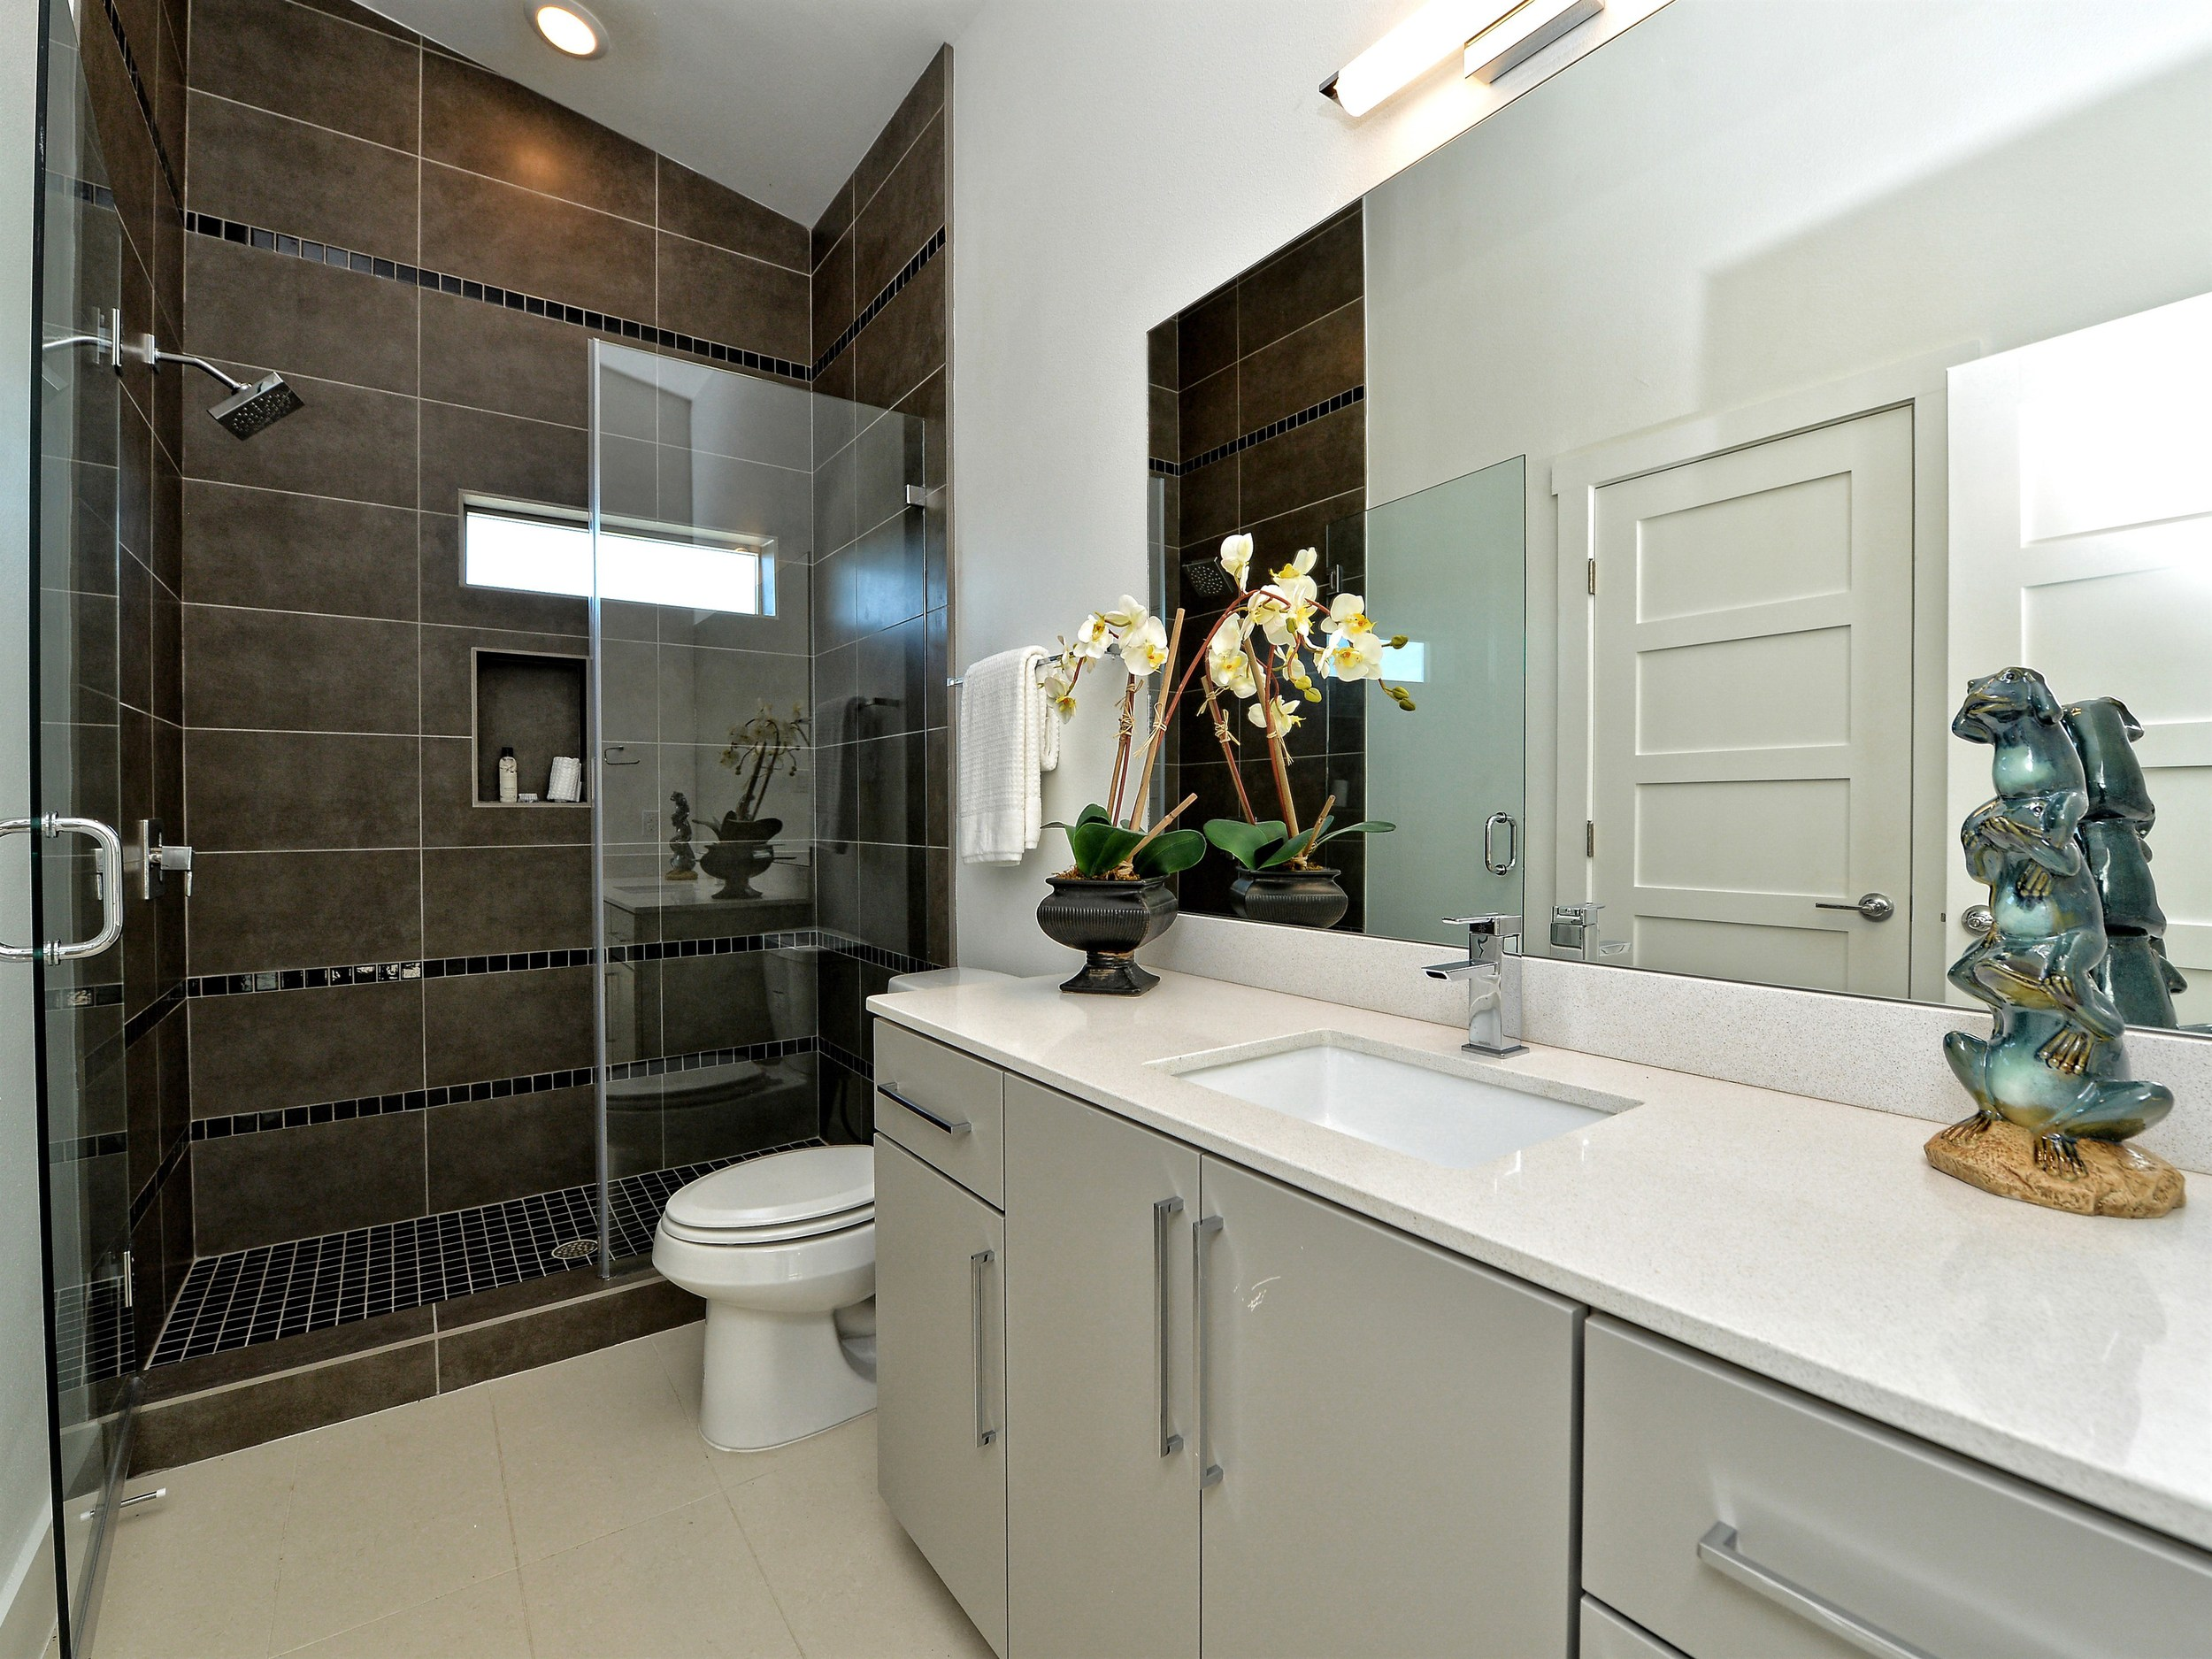 021_2nd Bathroom.jpg